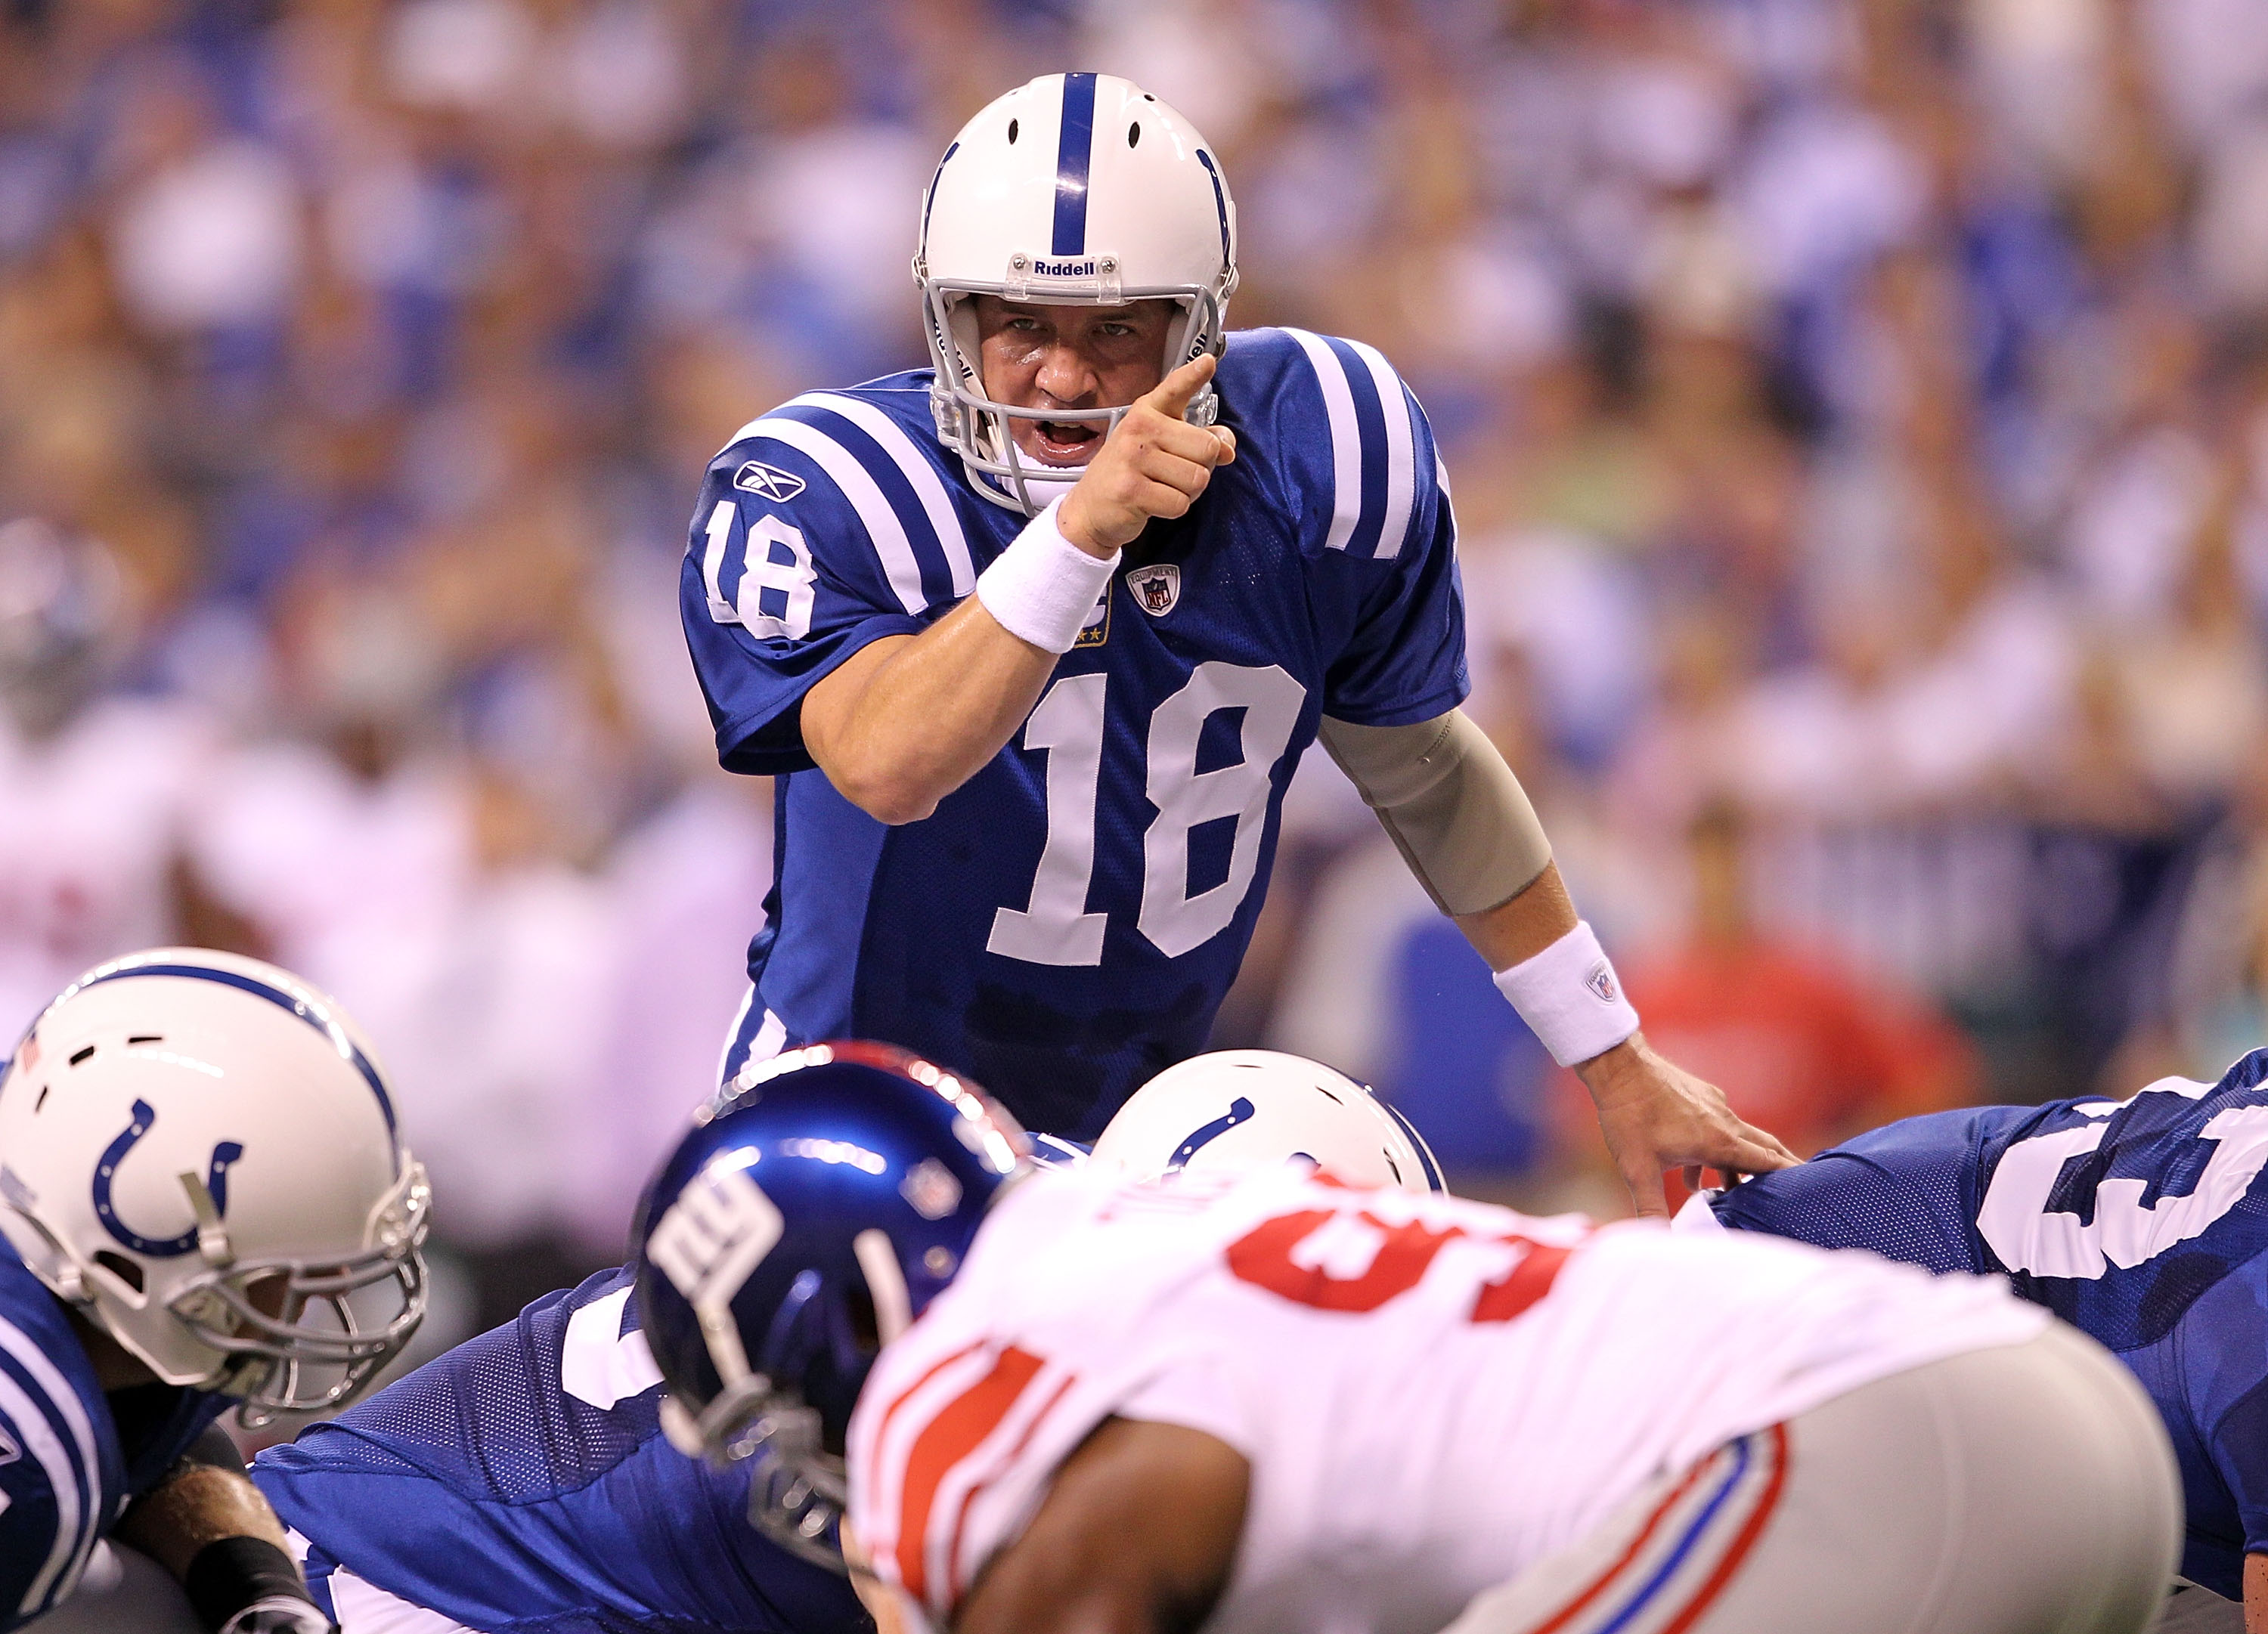 INDIANAPOLIS - SEPTEMBER 19:  Peyton Manning #18 of the Indianapolis Colts gives instructions to his team during  the NFL game against the New York Giants  at Lucas Oil Stadium on September 19, 2010 in Indianapolis, Indiana.  (Photo by Andy Lyons/Getty Im